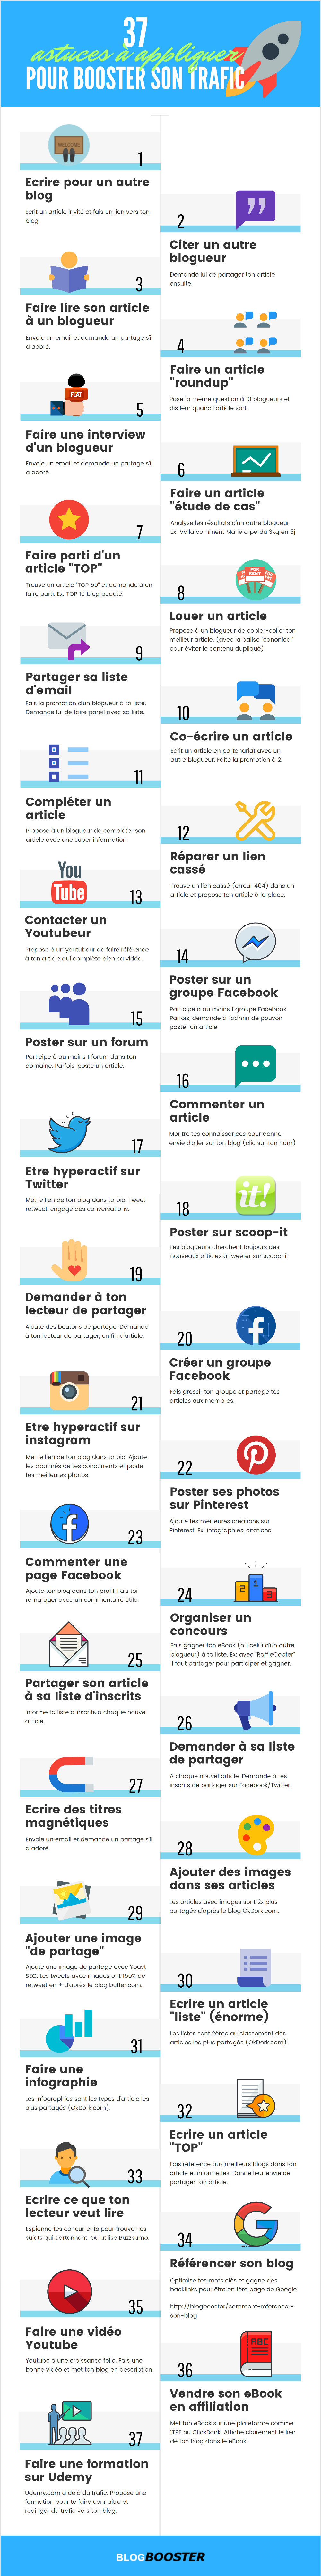 37 astuces trafic blog (infographie)